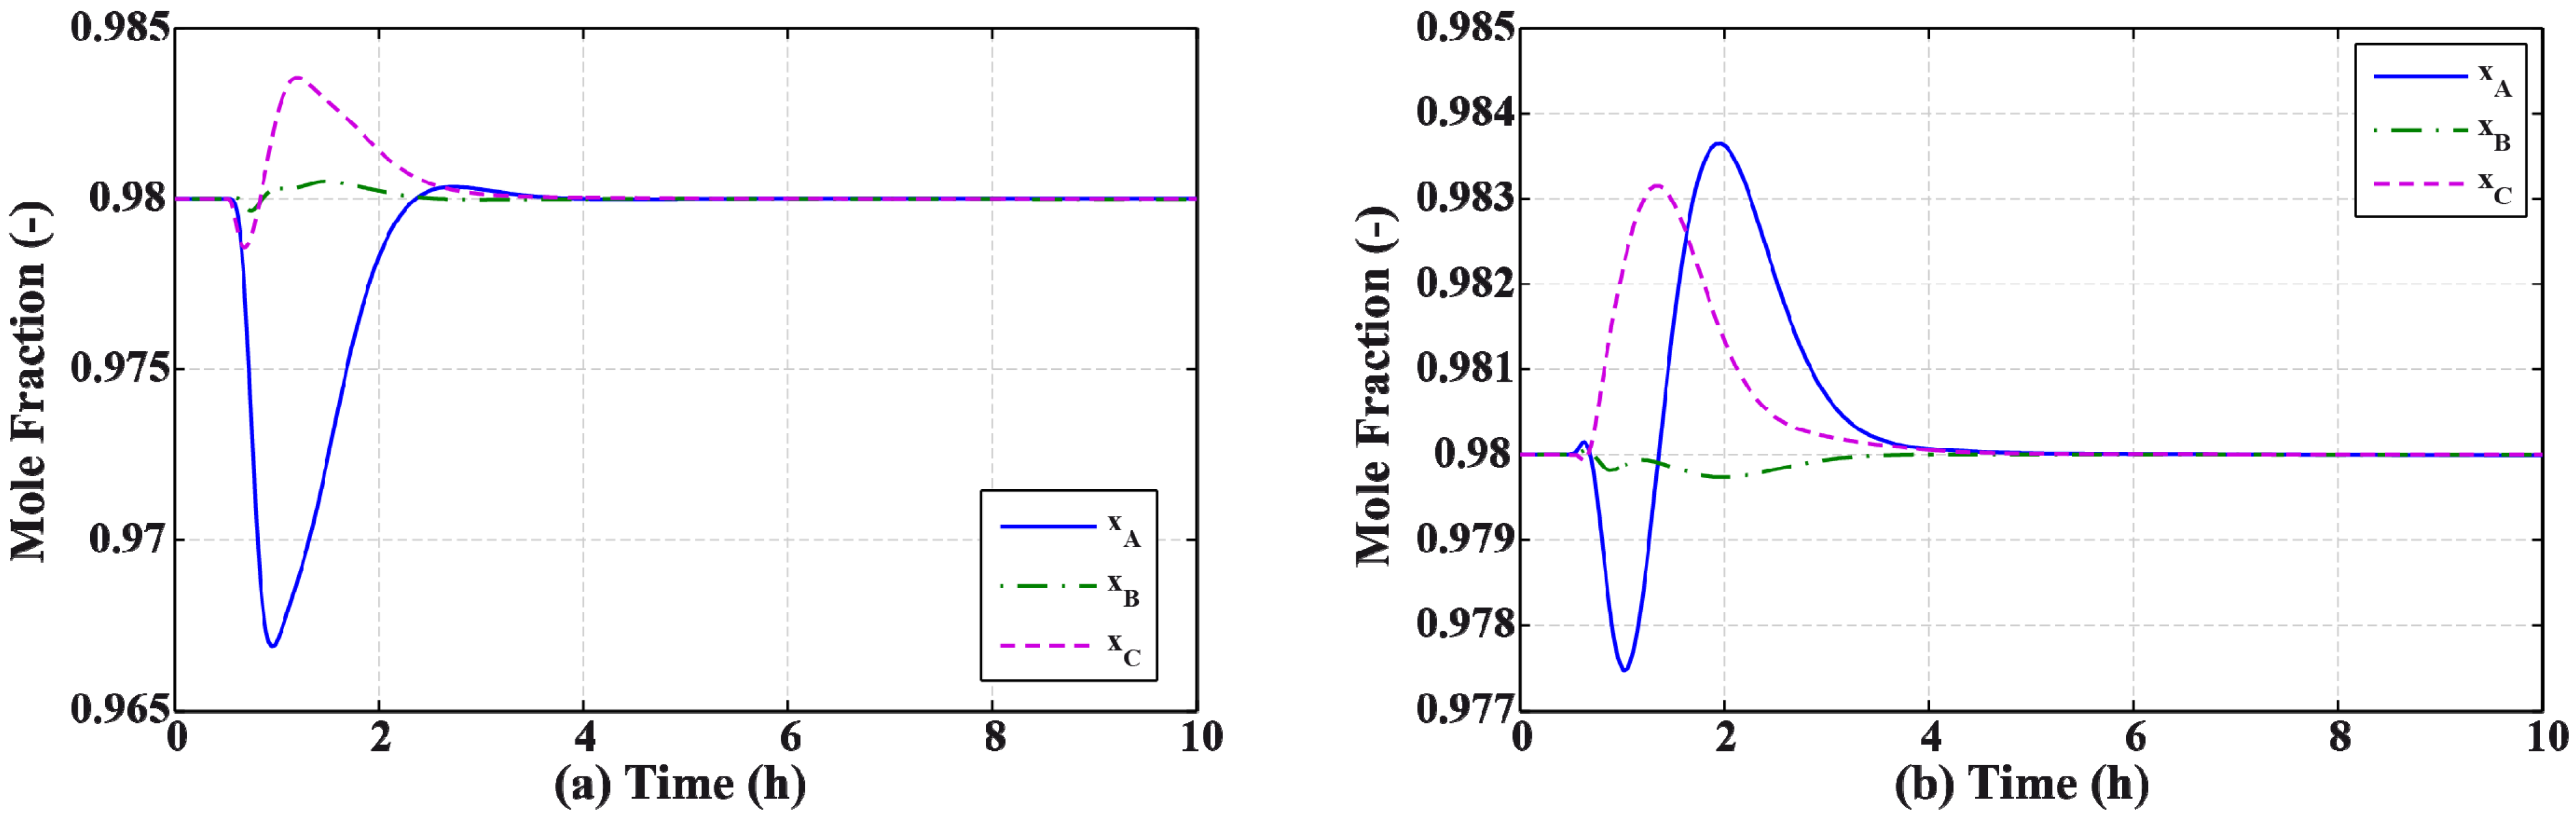 design analysis of phenol Dynamic simulation of the cleavage section in a phenol plant for safety analysis laura pellegrini, susi bonomi and giuseppe biardi department of chemistry, materials and chemical engineering.